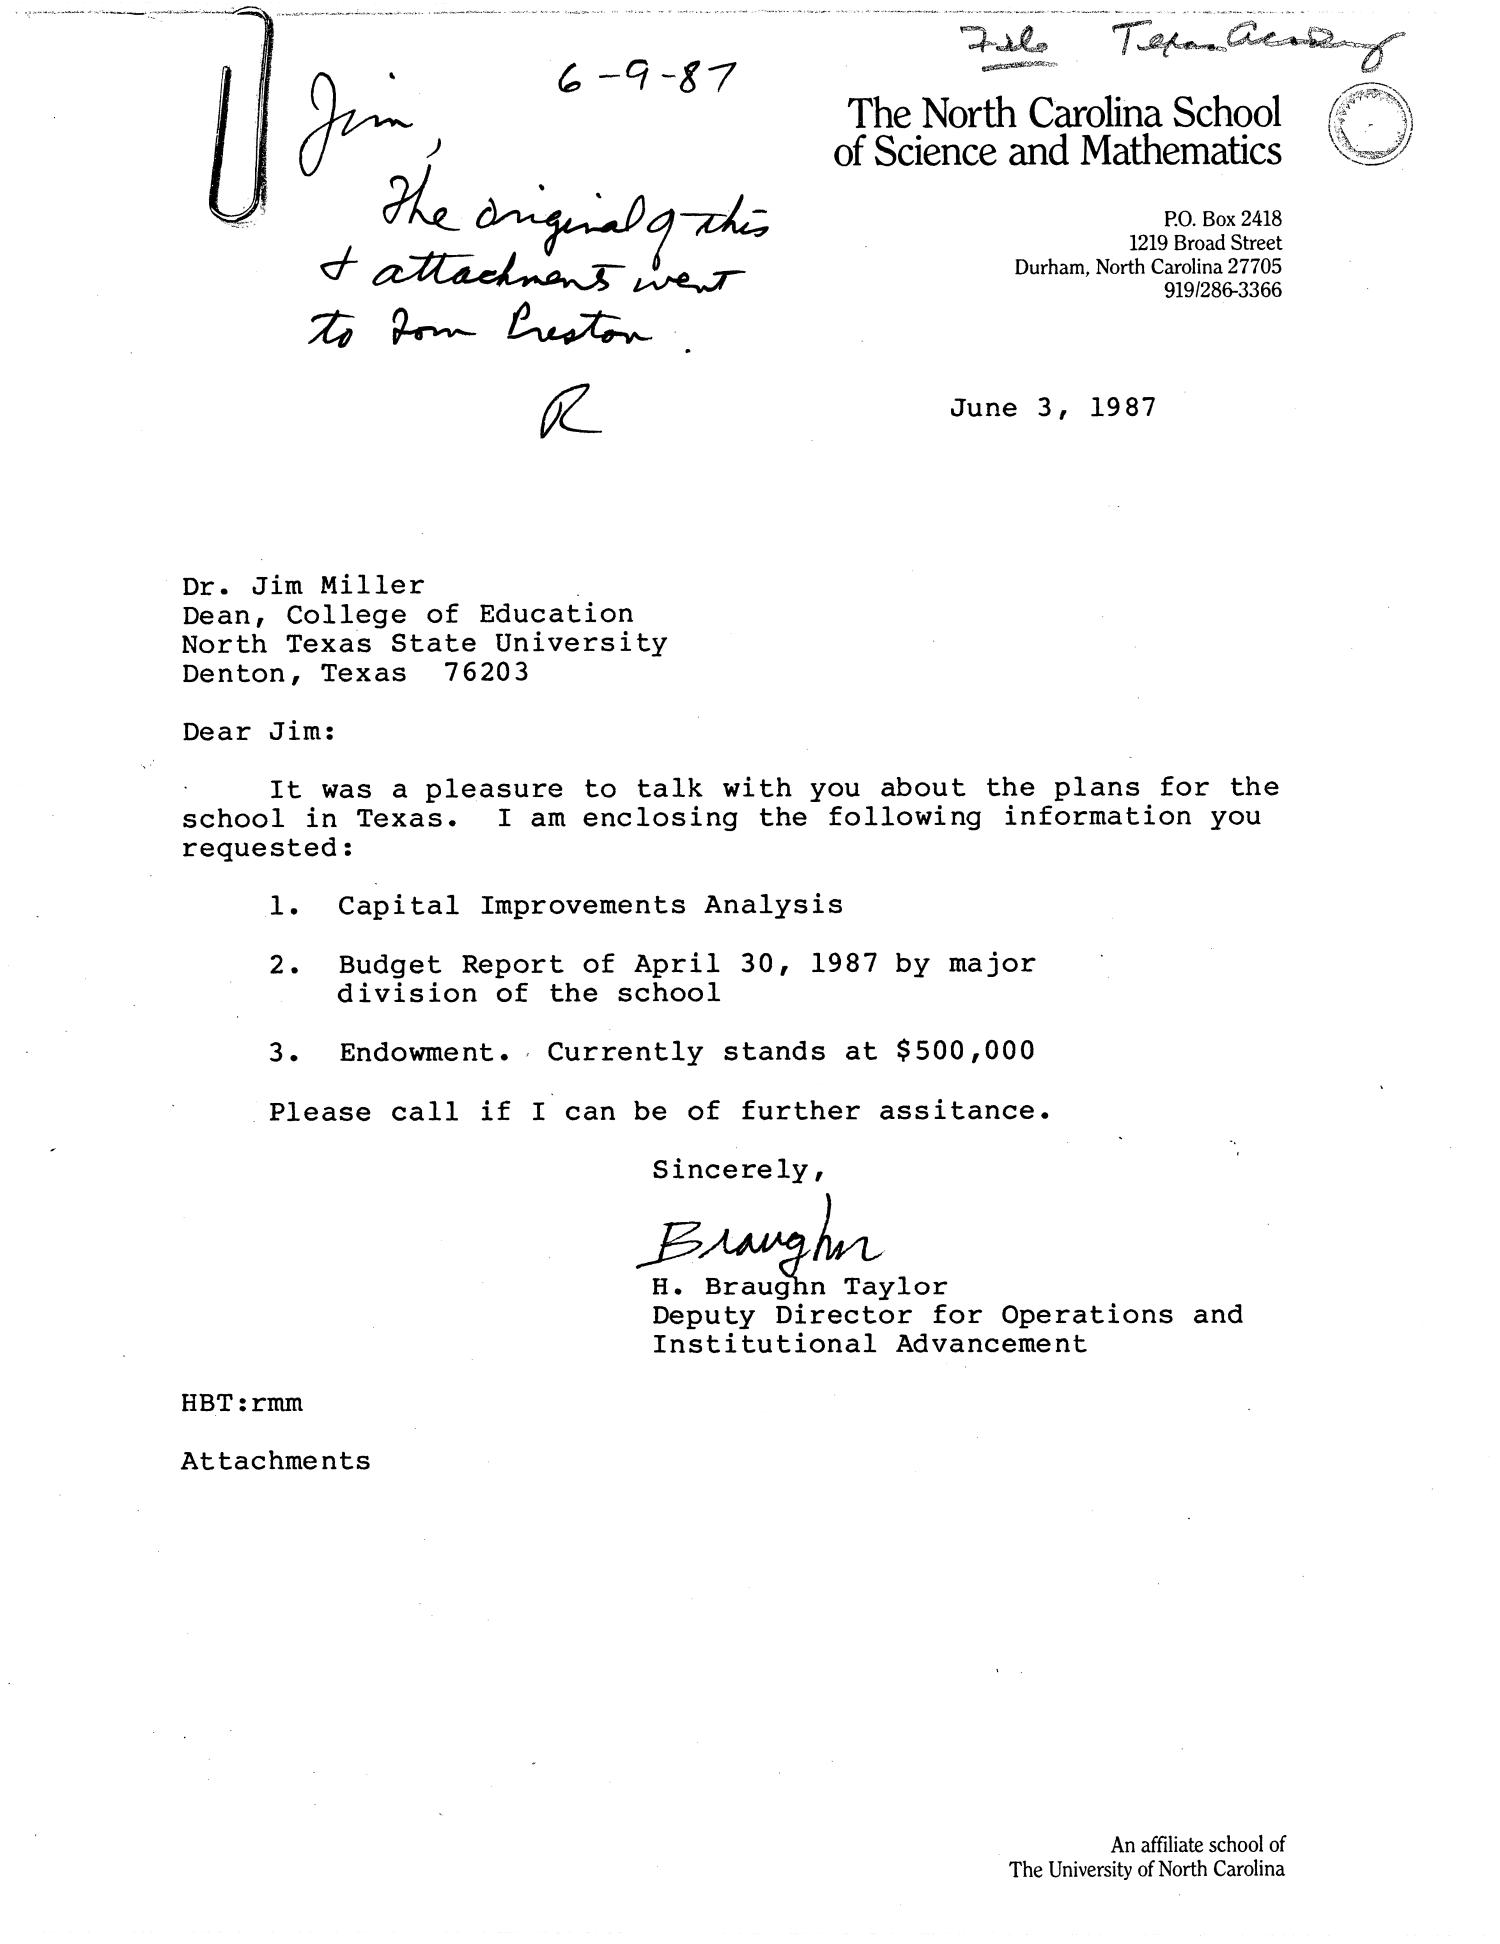 [Letter from H. Braughn Taylor to James R. Miller, June 3, 1987]                                                                                                      [Sequence #]: 1 of 4